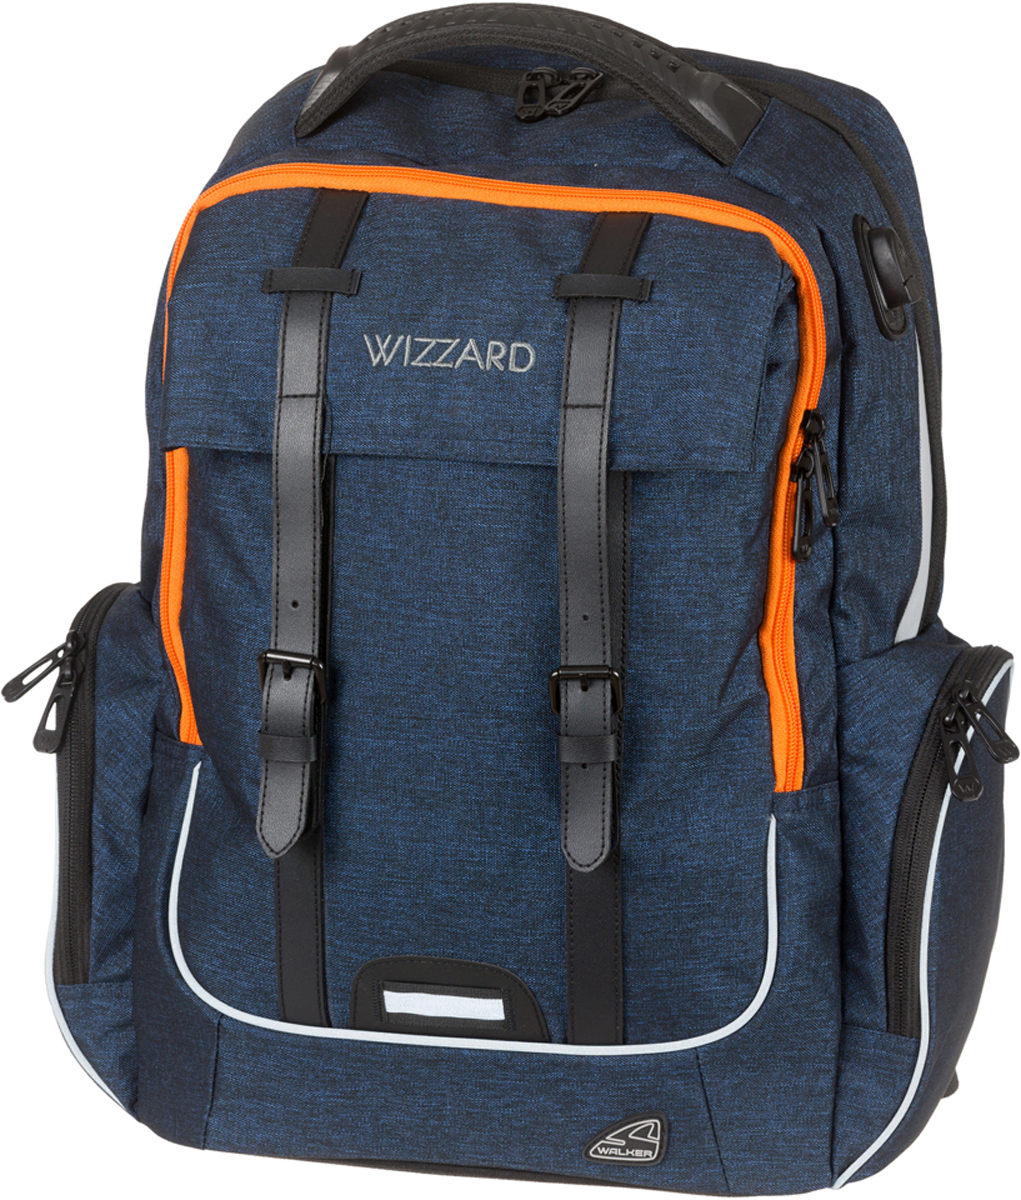 Schneiders Рюкзак Walker Wizard Academy Dark Blue Melange